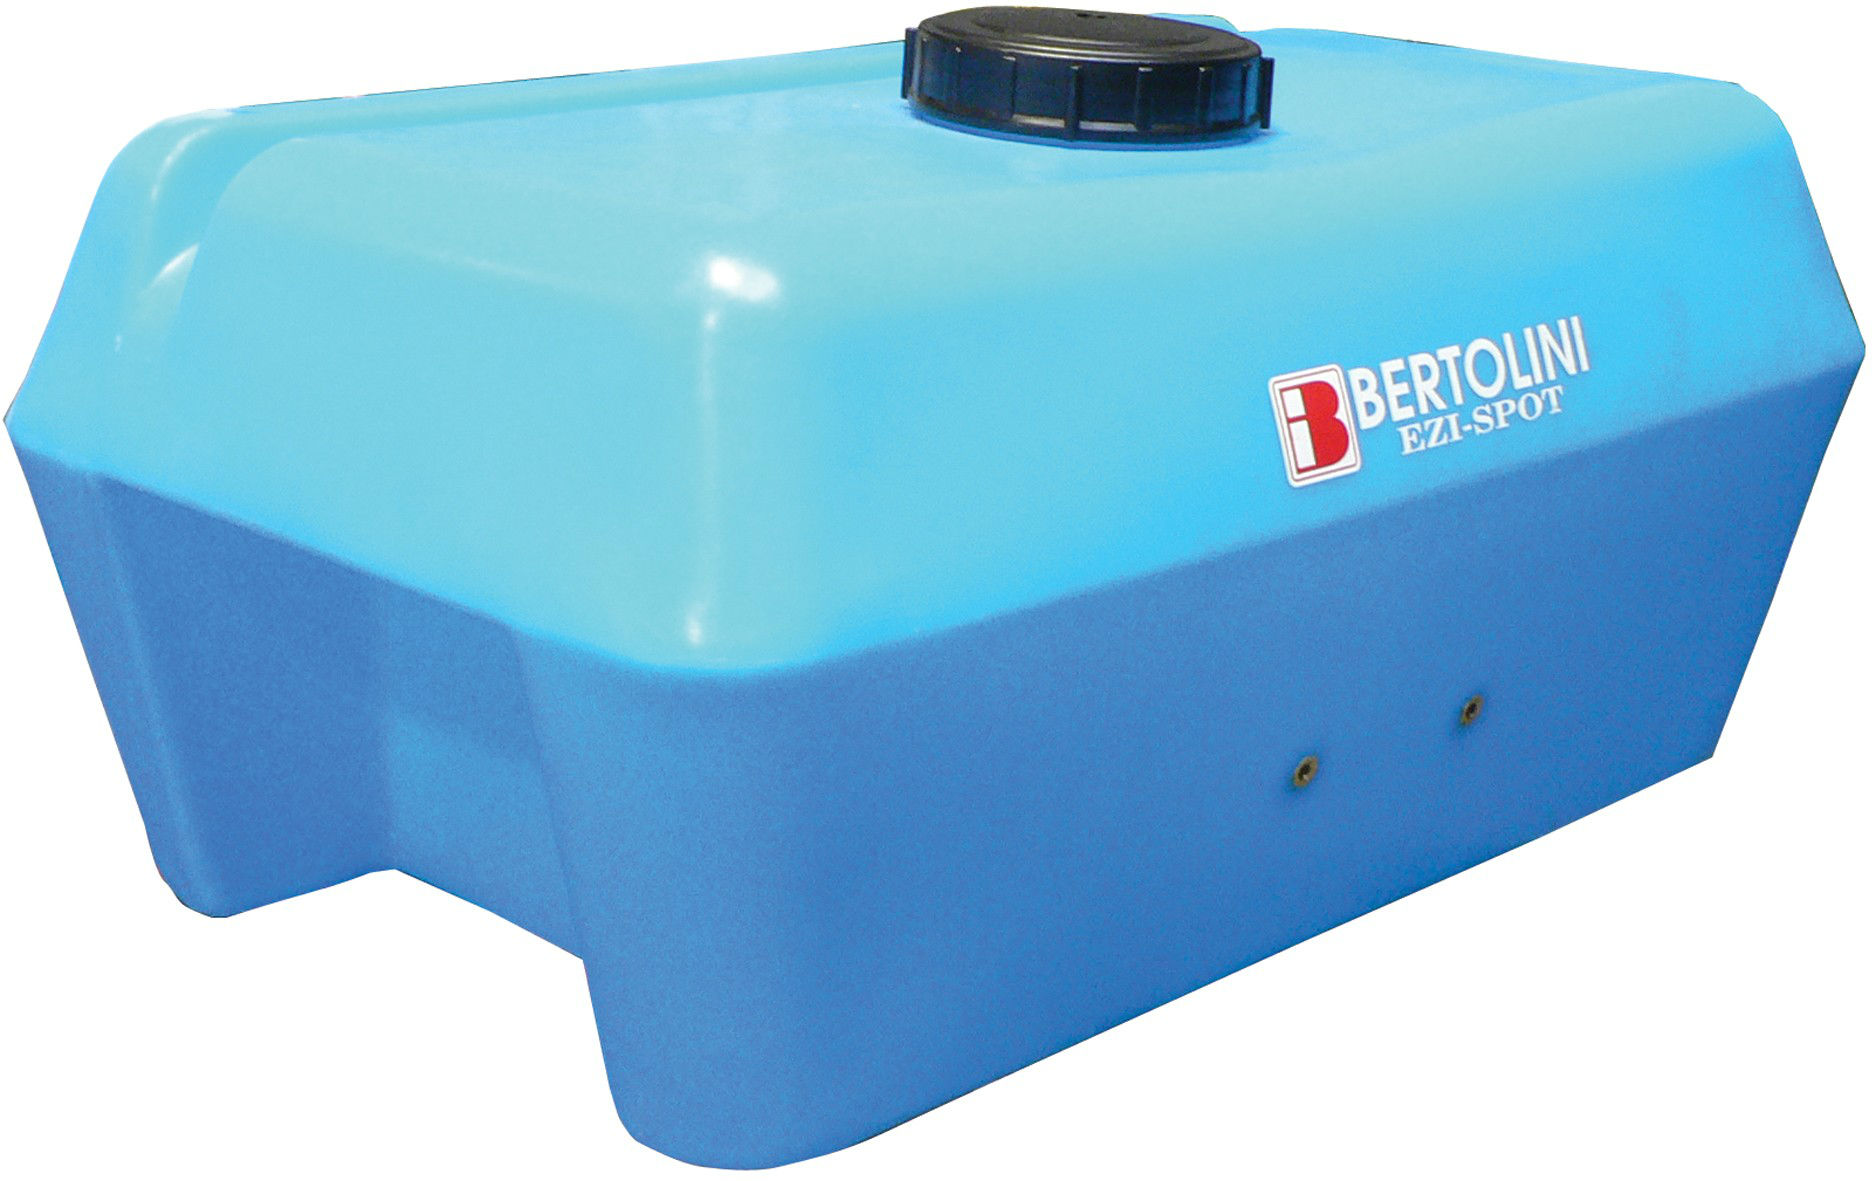 Bertolini Spray Tanks